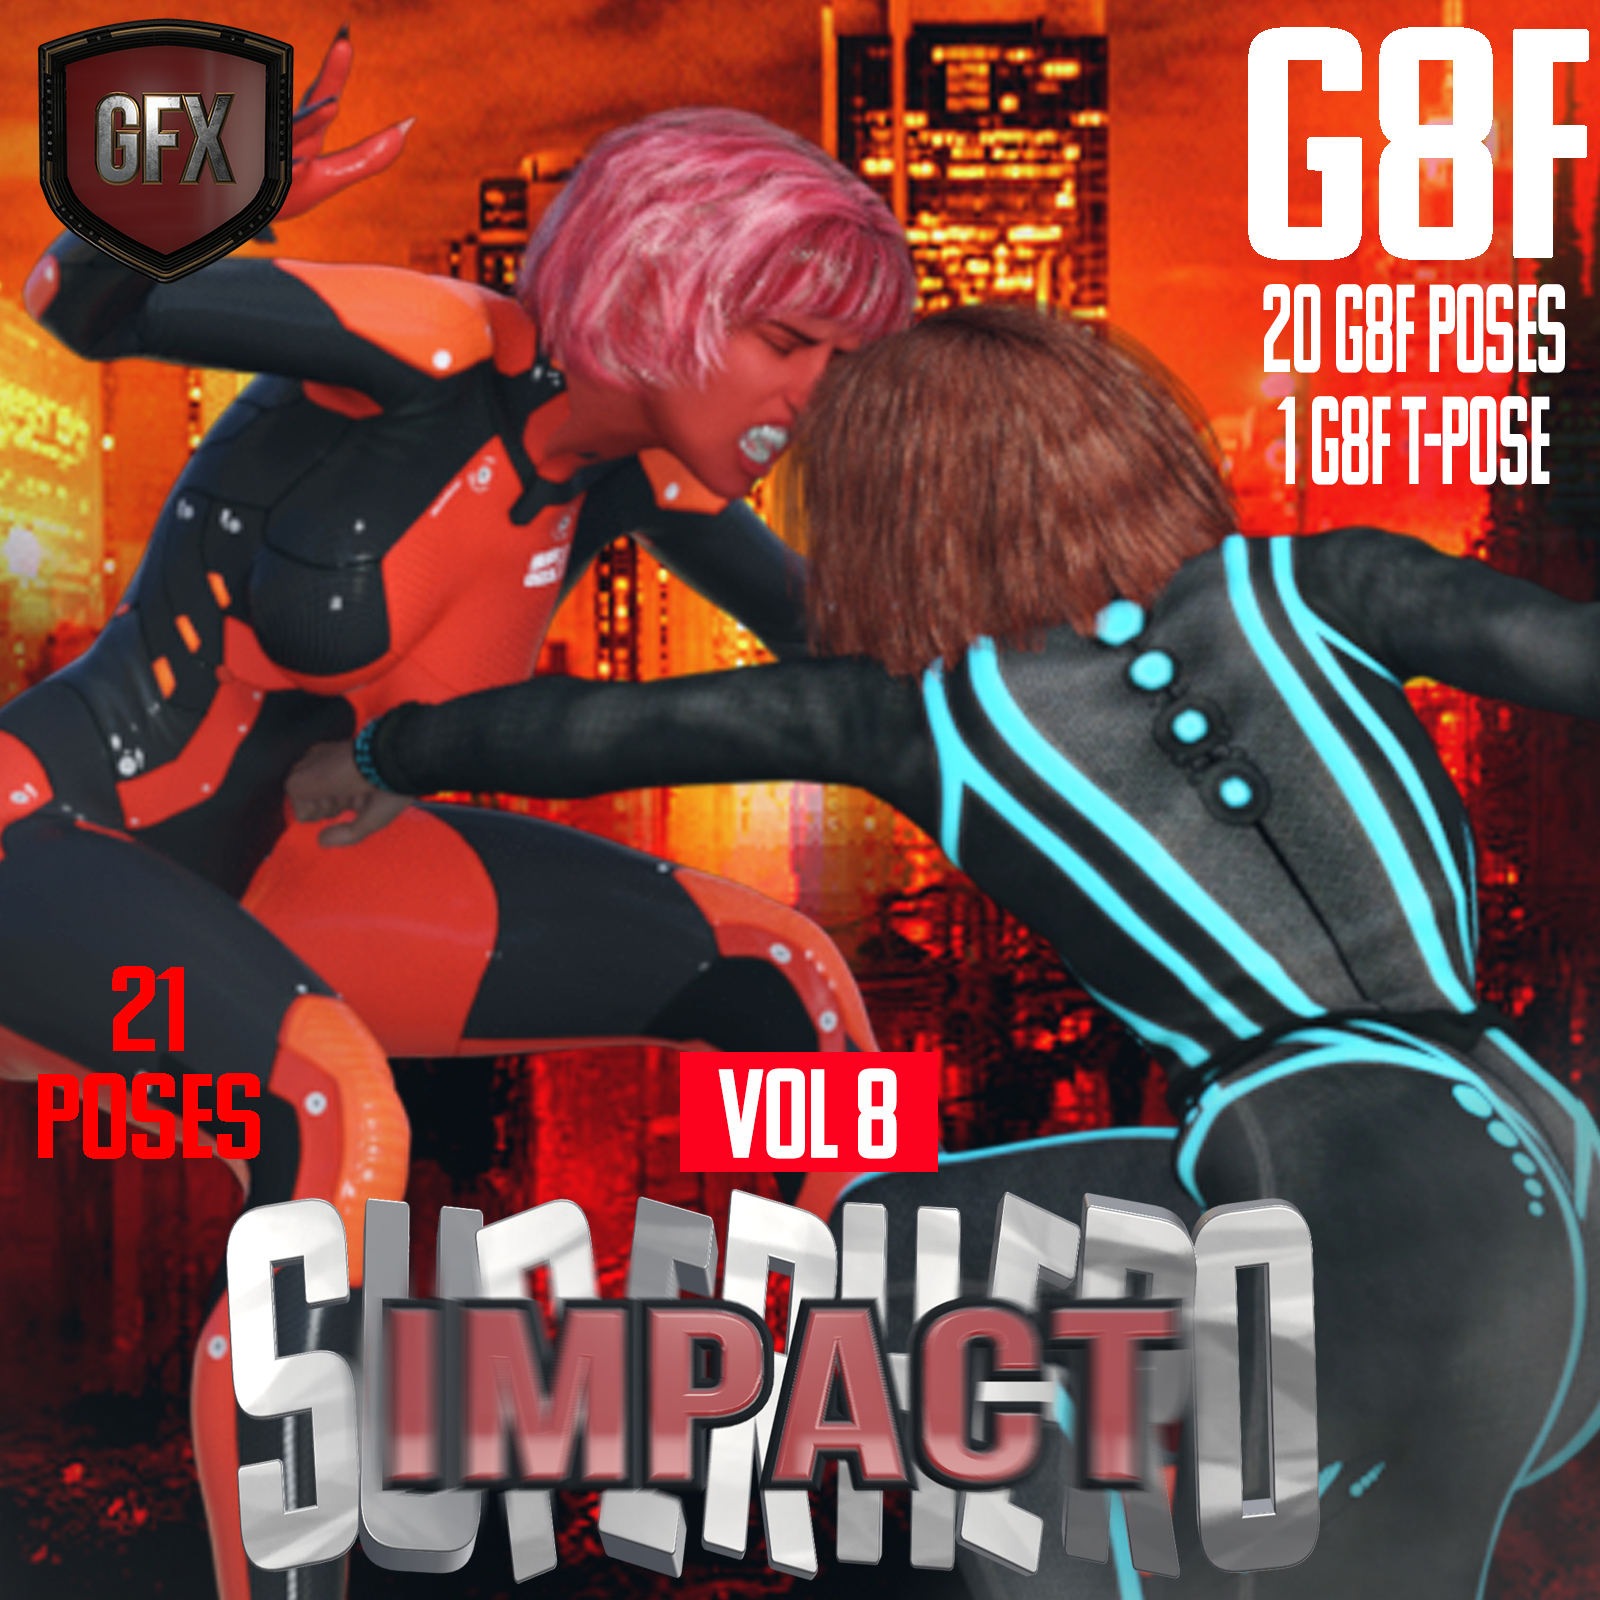 SuperHero Impact for G8F Volume 8 by GriffinFX